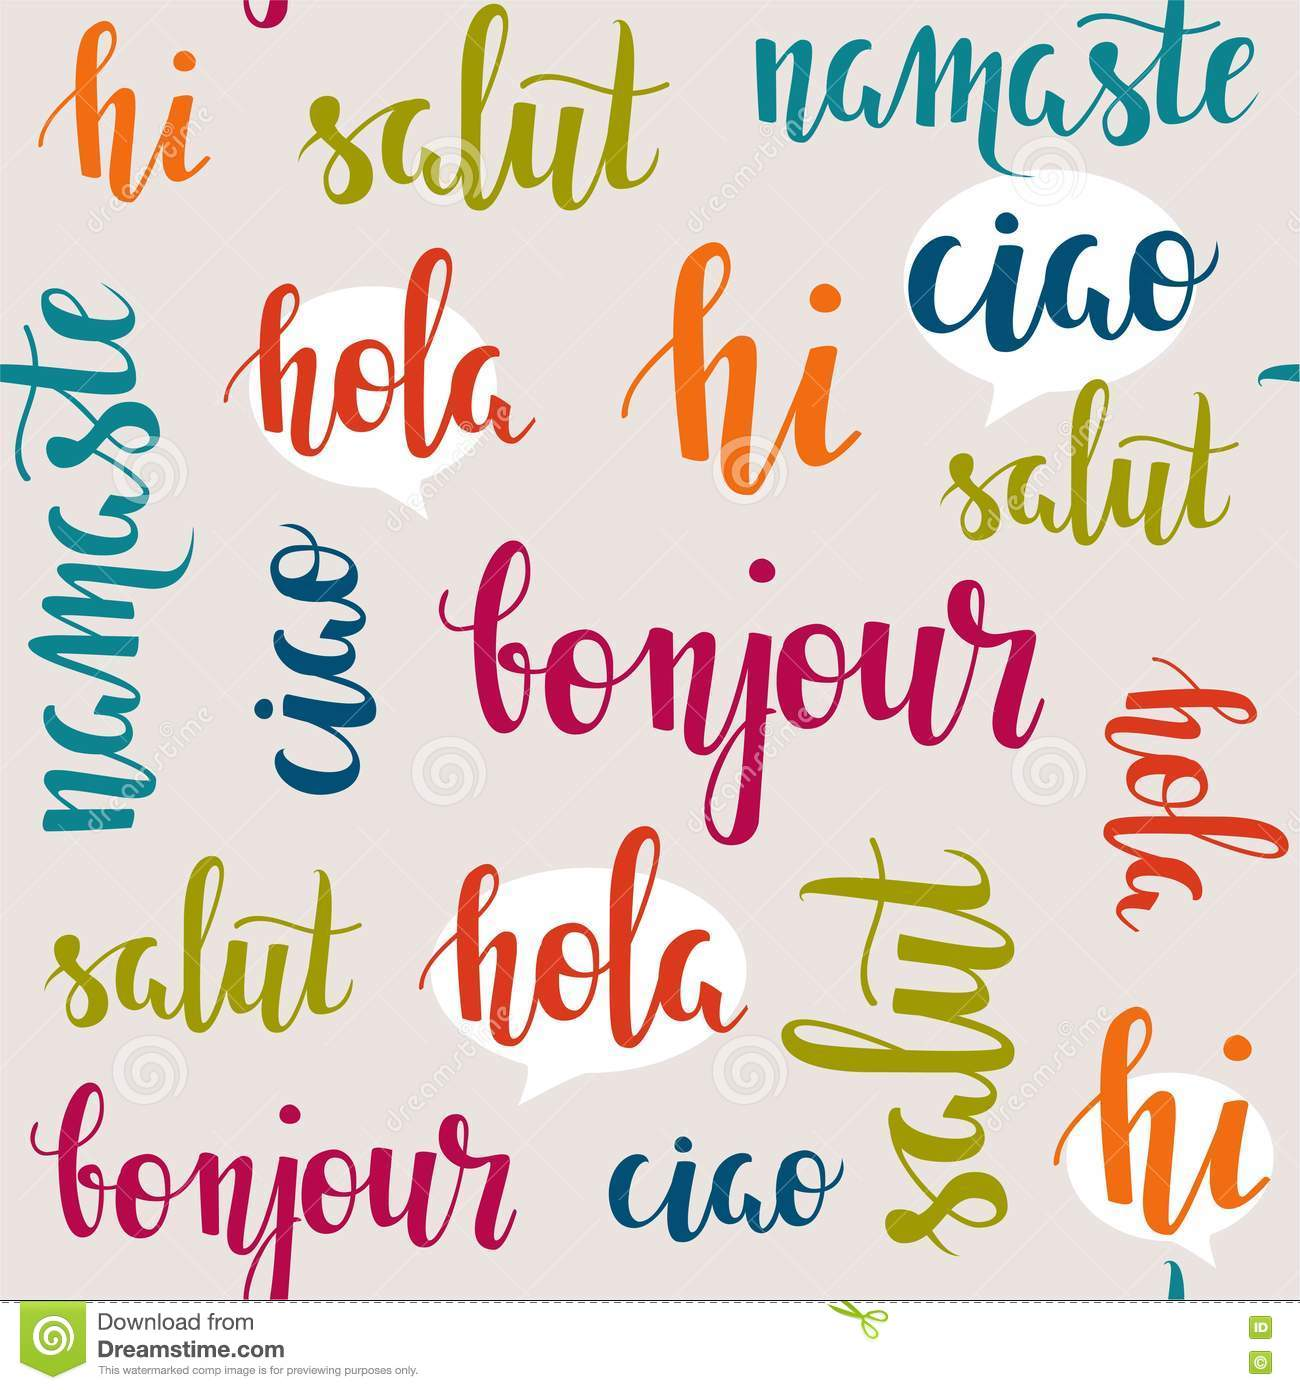 Greeting words in different languages stock vector illustration download greeting words in different languages stock vector illustration of dialog learn m4hsunfo